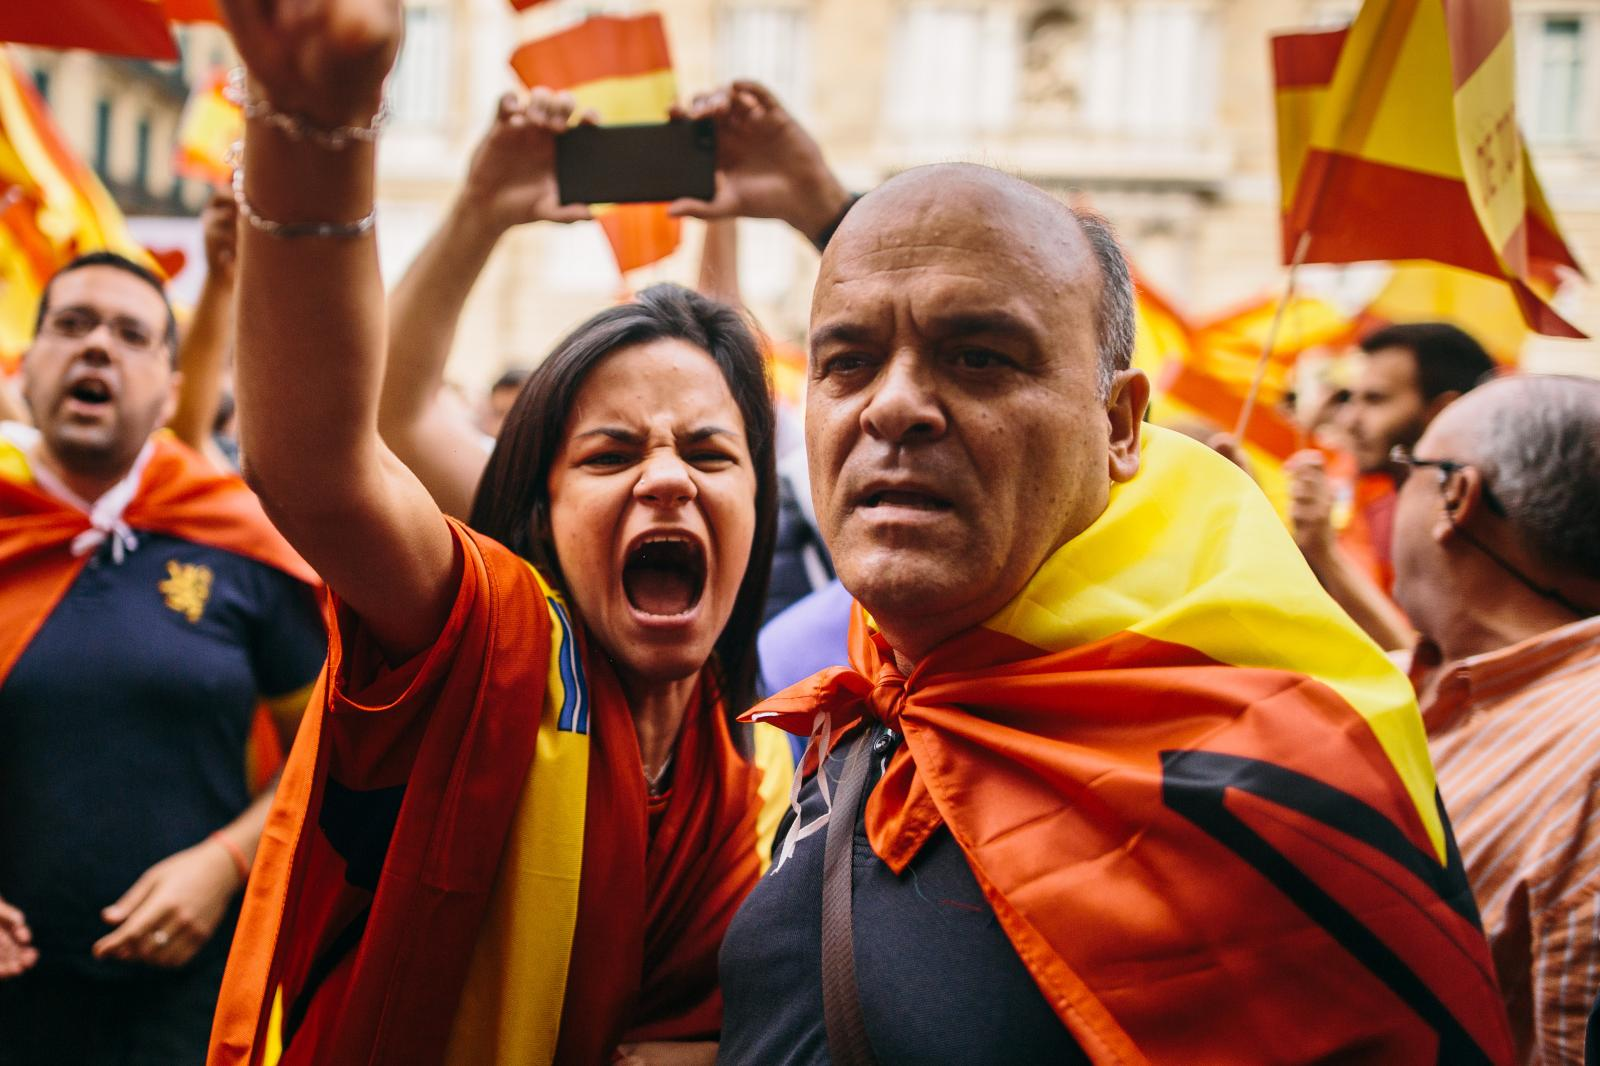 Pro-spanish protesters shout at a man walking by, chanting Independence slogans. September 30th, 2017